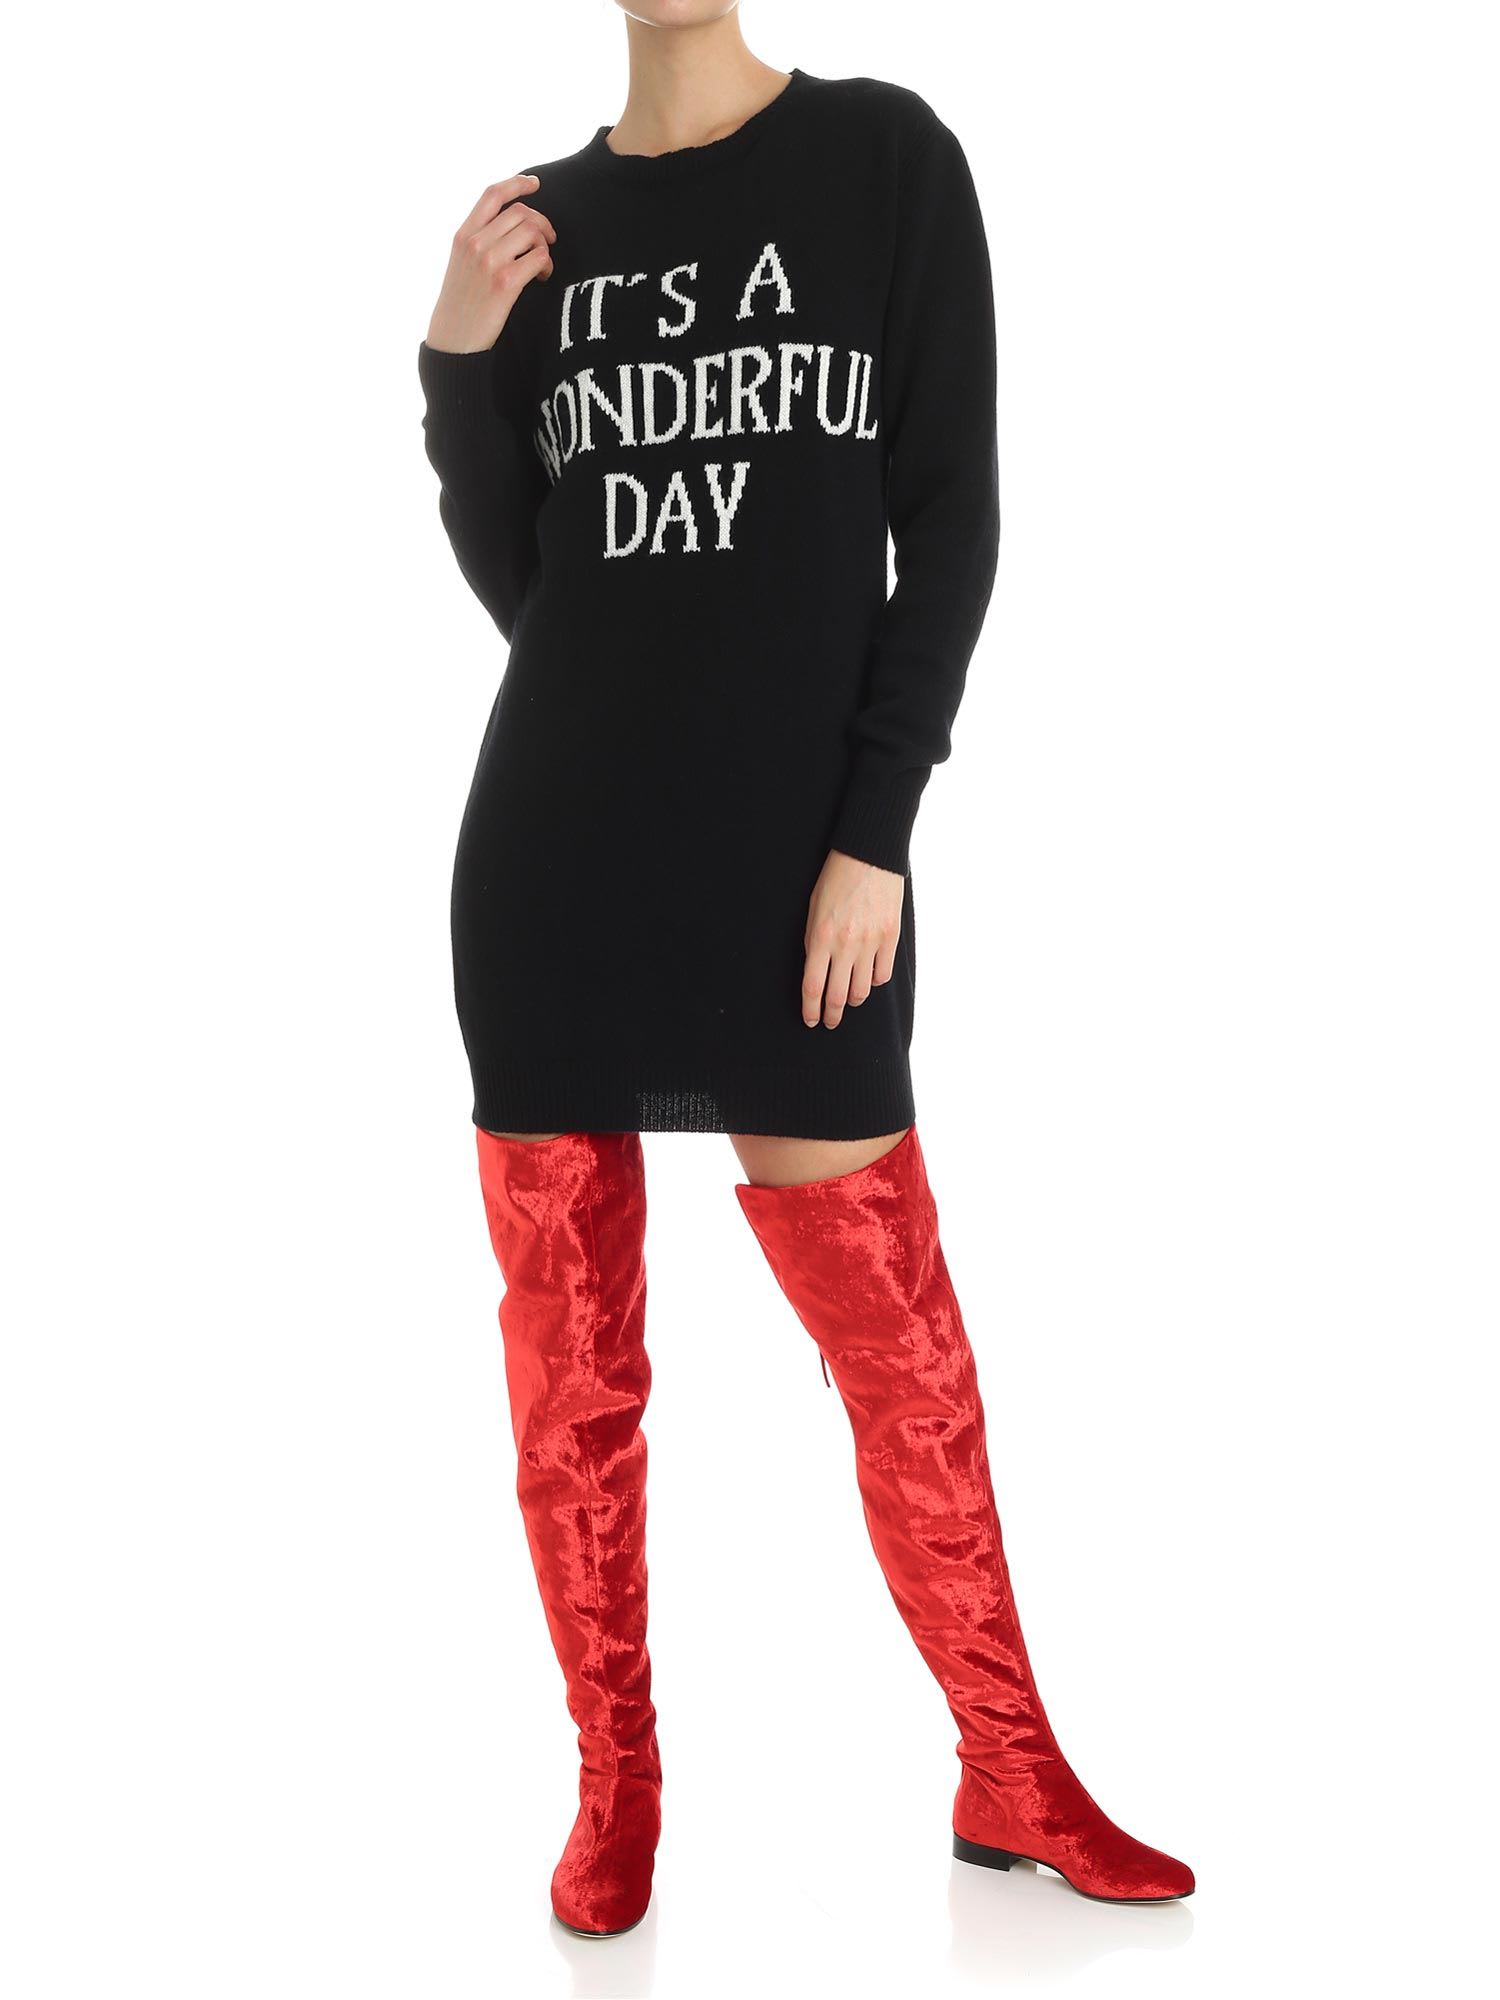 Alberta Ferretti – Its A Wonderful Day Dress